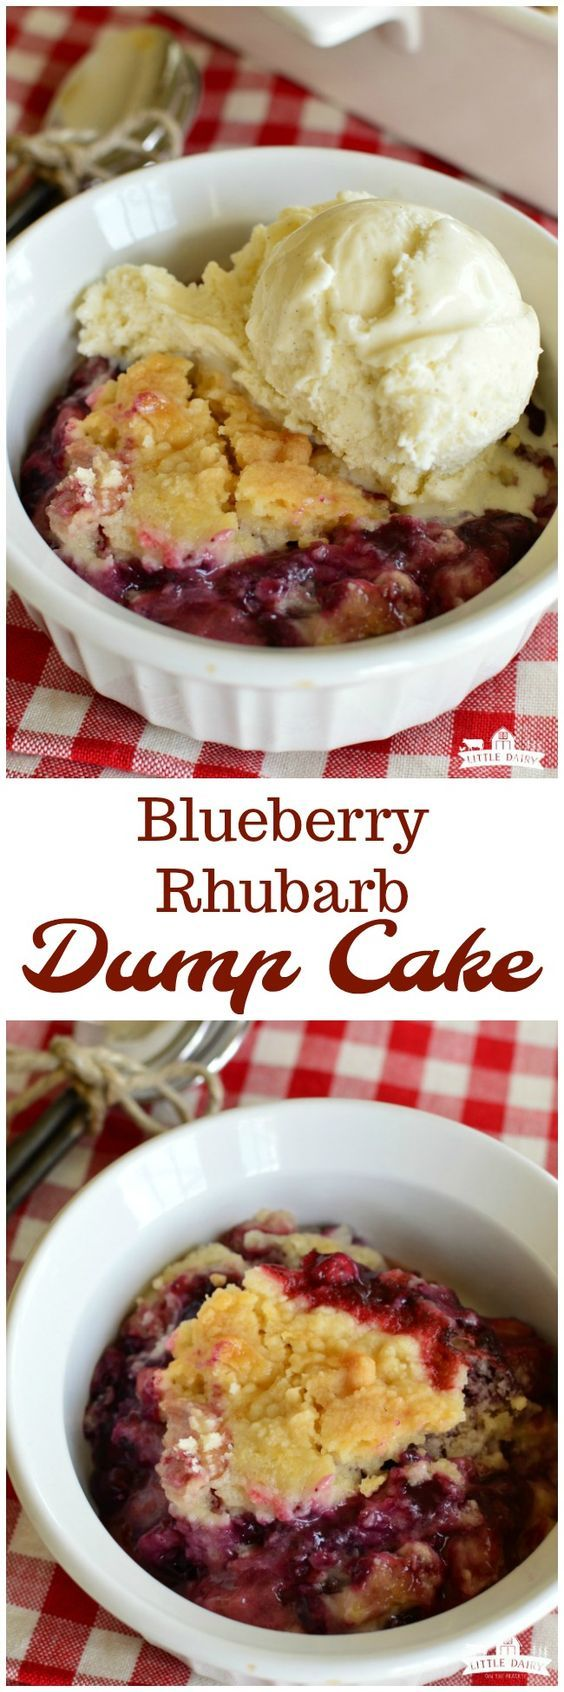 Blueberry Rhubarb Dump Cake is a quick and easy summer dessert! It only takes a few ingredients. Make sure to top it with vanilla ice cream or whipped cream! #rhubarb www.littledairyon...